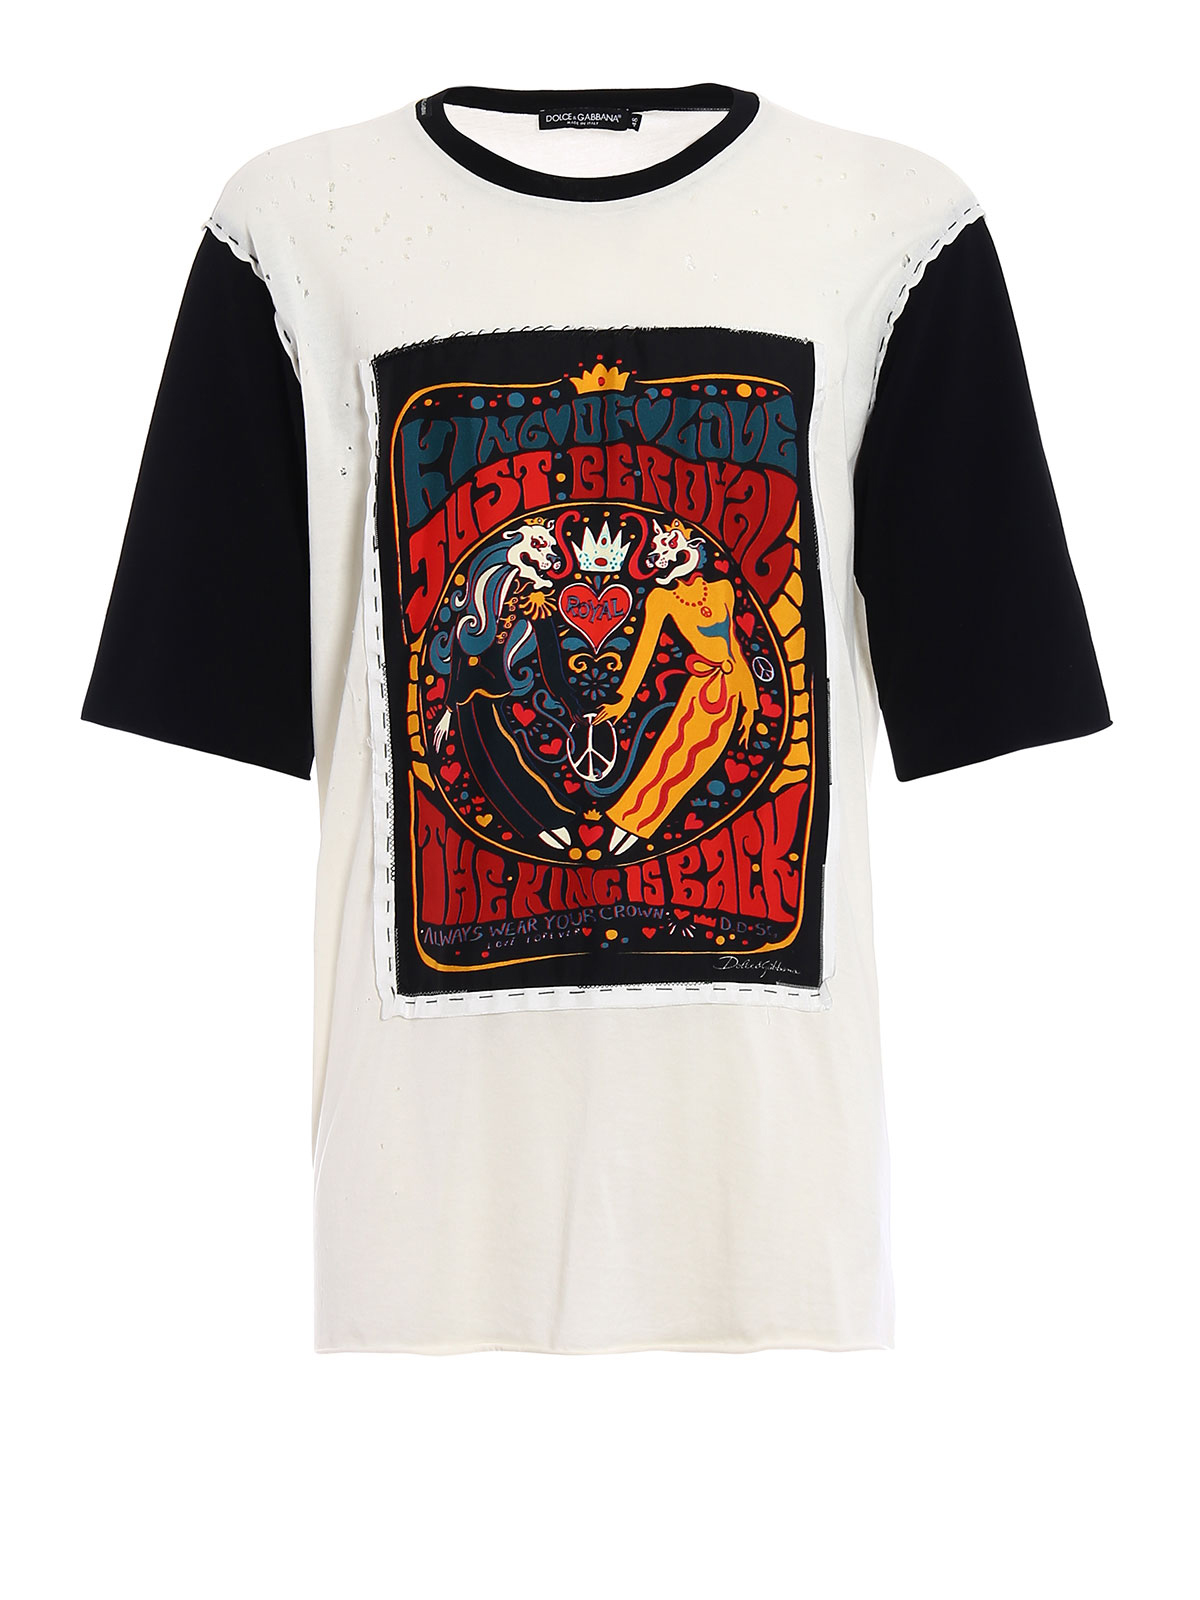 King of Love worn out cotton Tee by Dolce & Gabbana